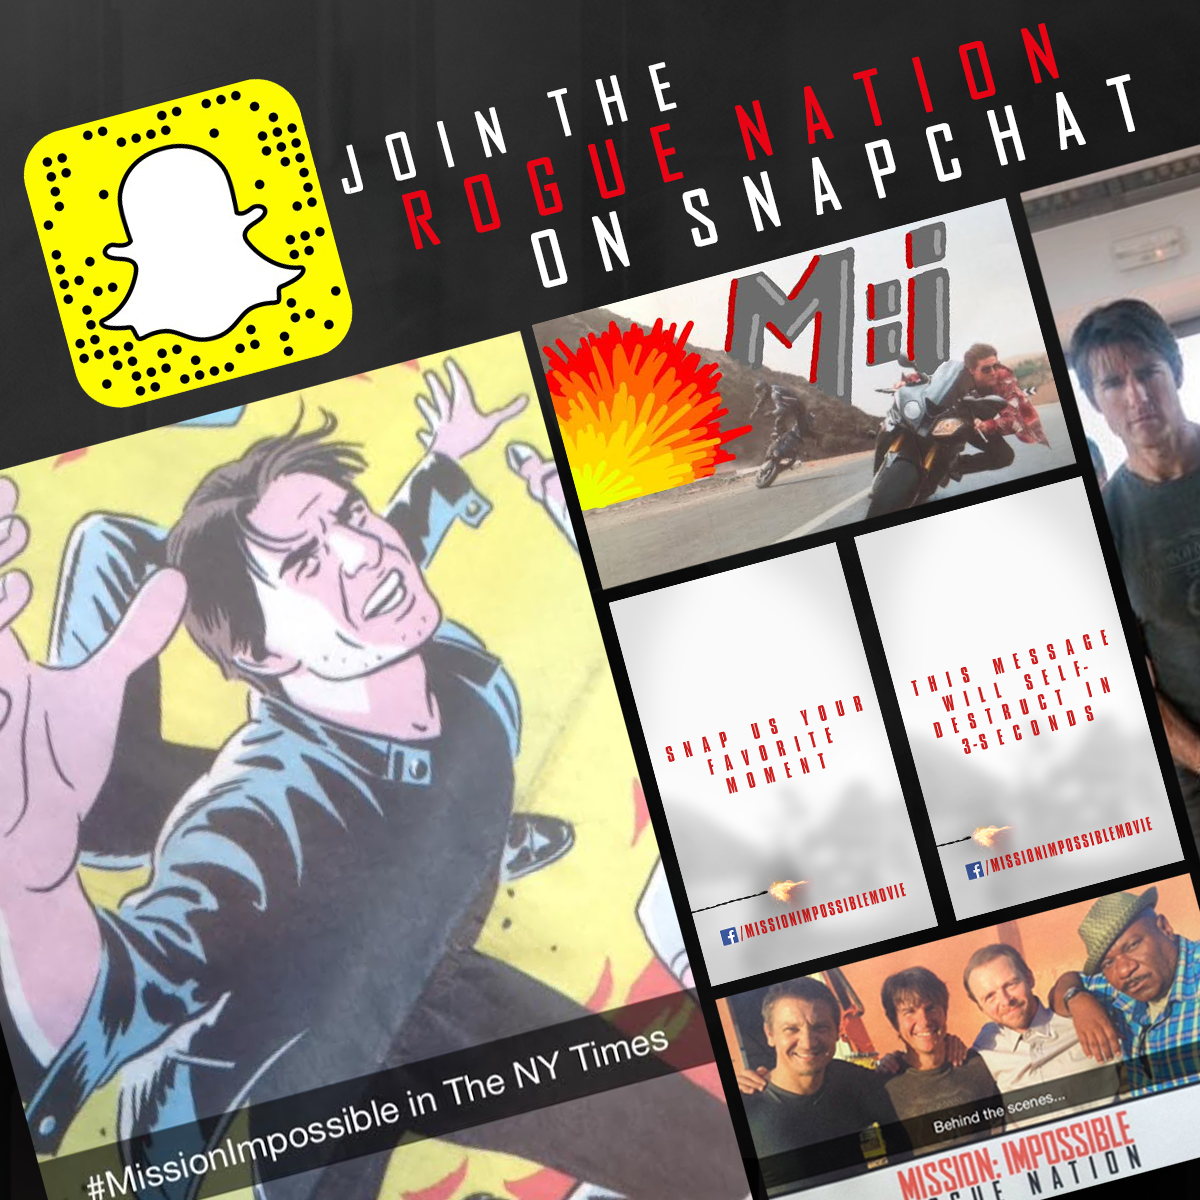 RT @MissionFilm: Follow MissionMovie on Snapchat NOW for a special message from Tom Cruise! RT http://t.co/tWIzy9wrpJ